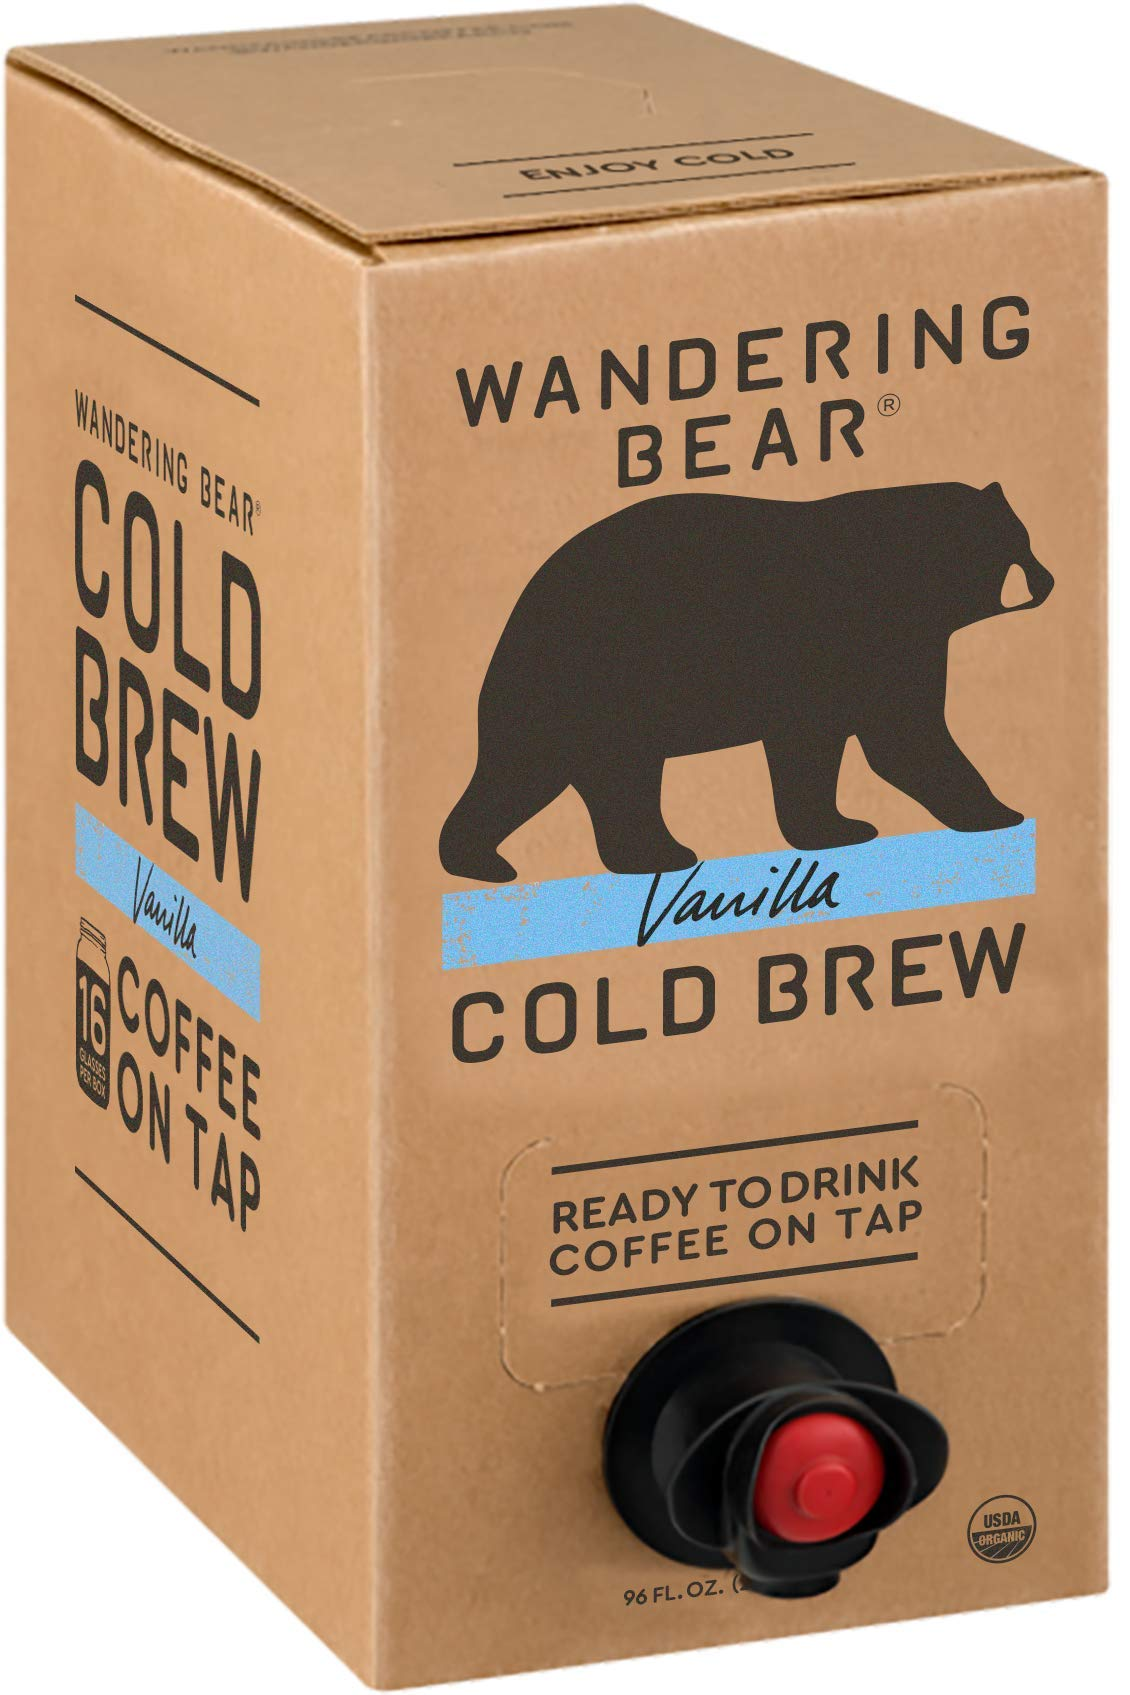 Wandering Bear Organic Cold Brew Coffee On Tap, Vanilla, No Sugar, Always Fresh and Ready to Drink, Not a Concentrate, 96 fl oz by Wandering Bear